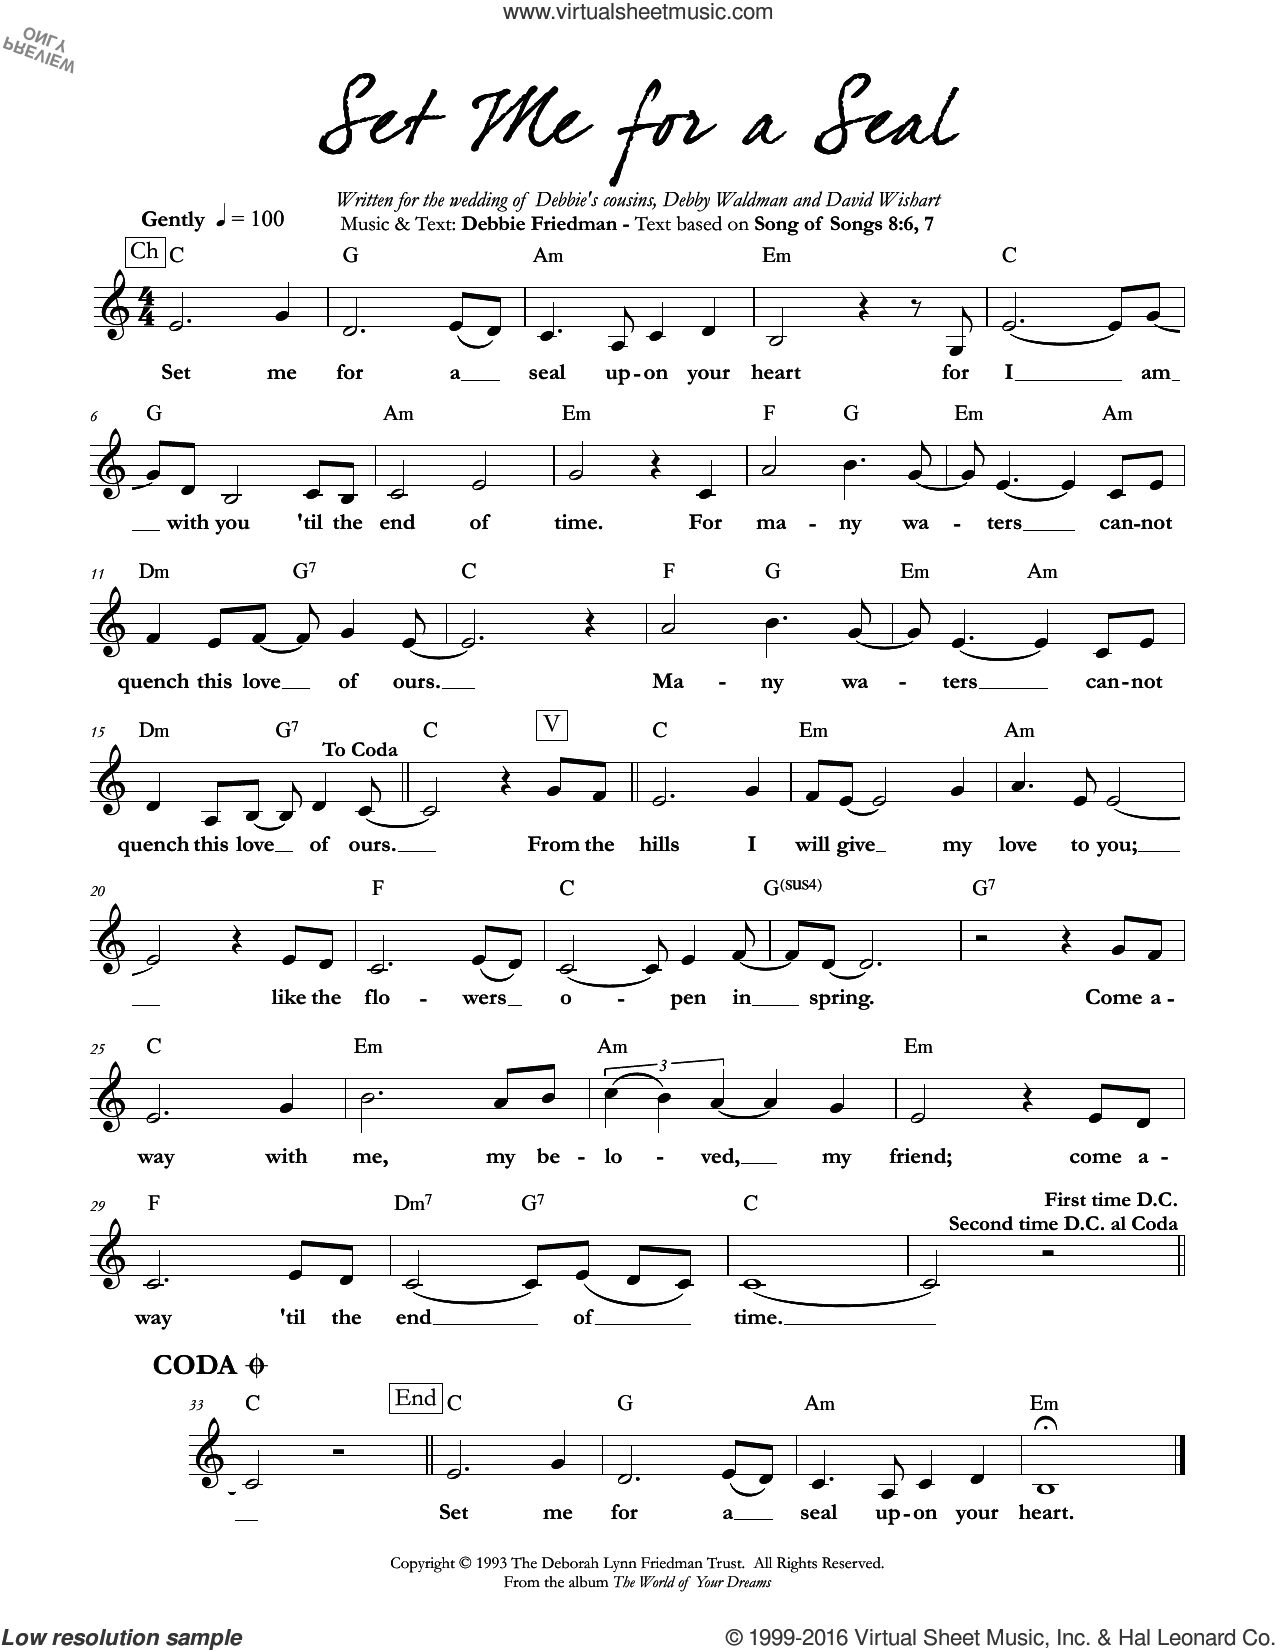 Set Me for a Seal sheet music for voice and other instruments (fake book) by Debbie Friedman, intermediate voice. Score Image Preview.